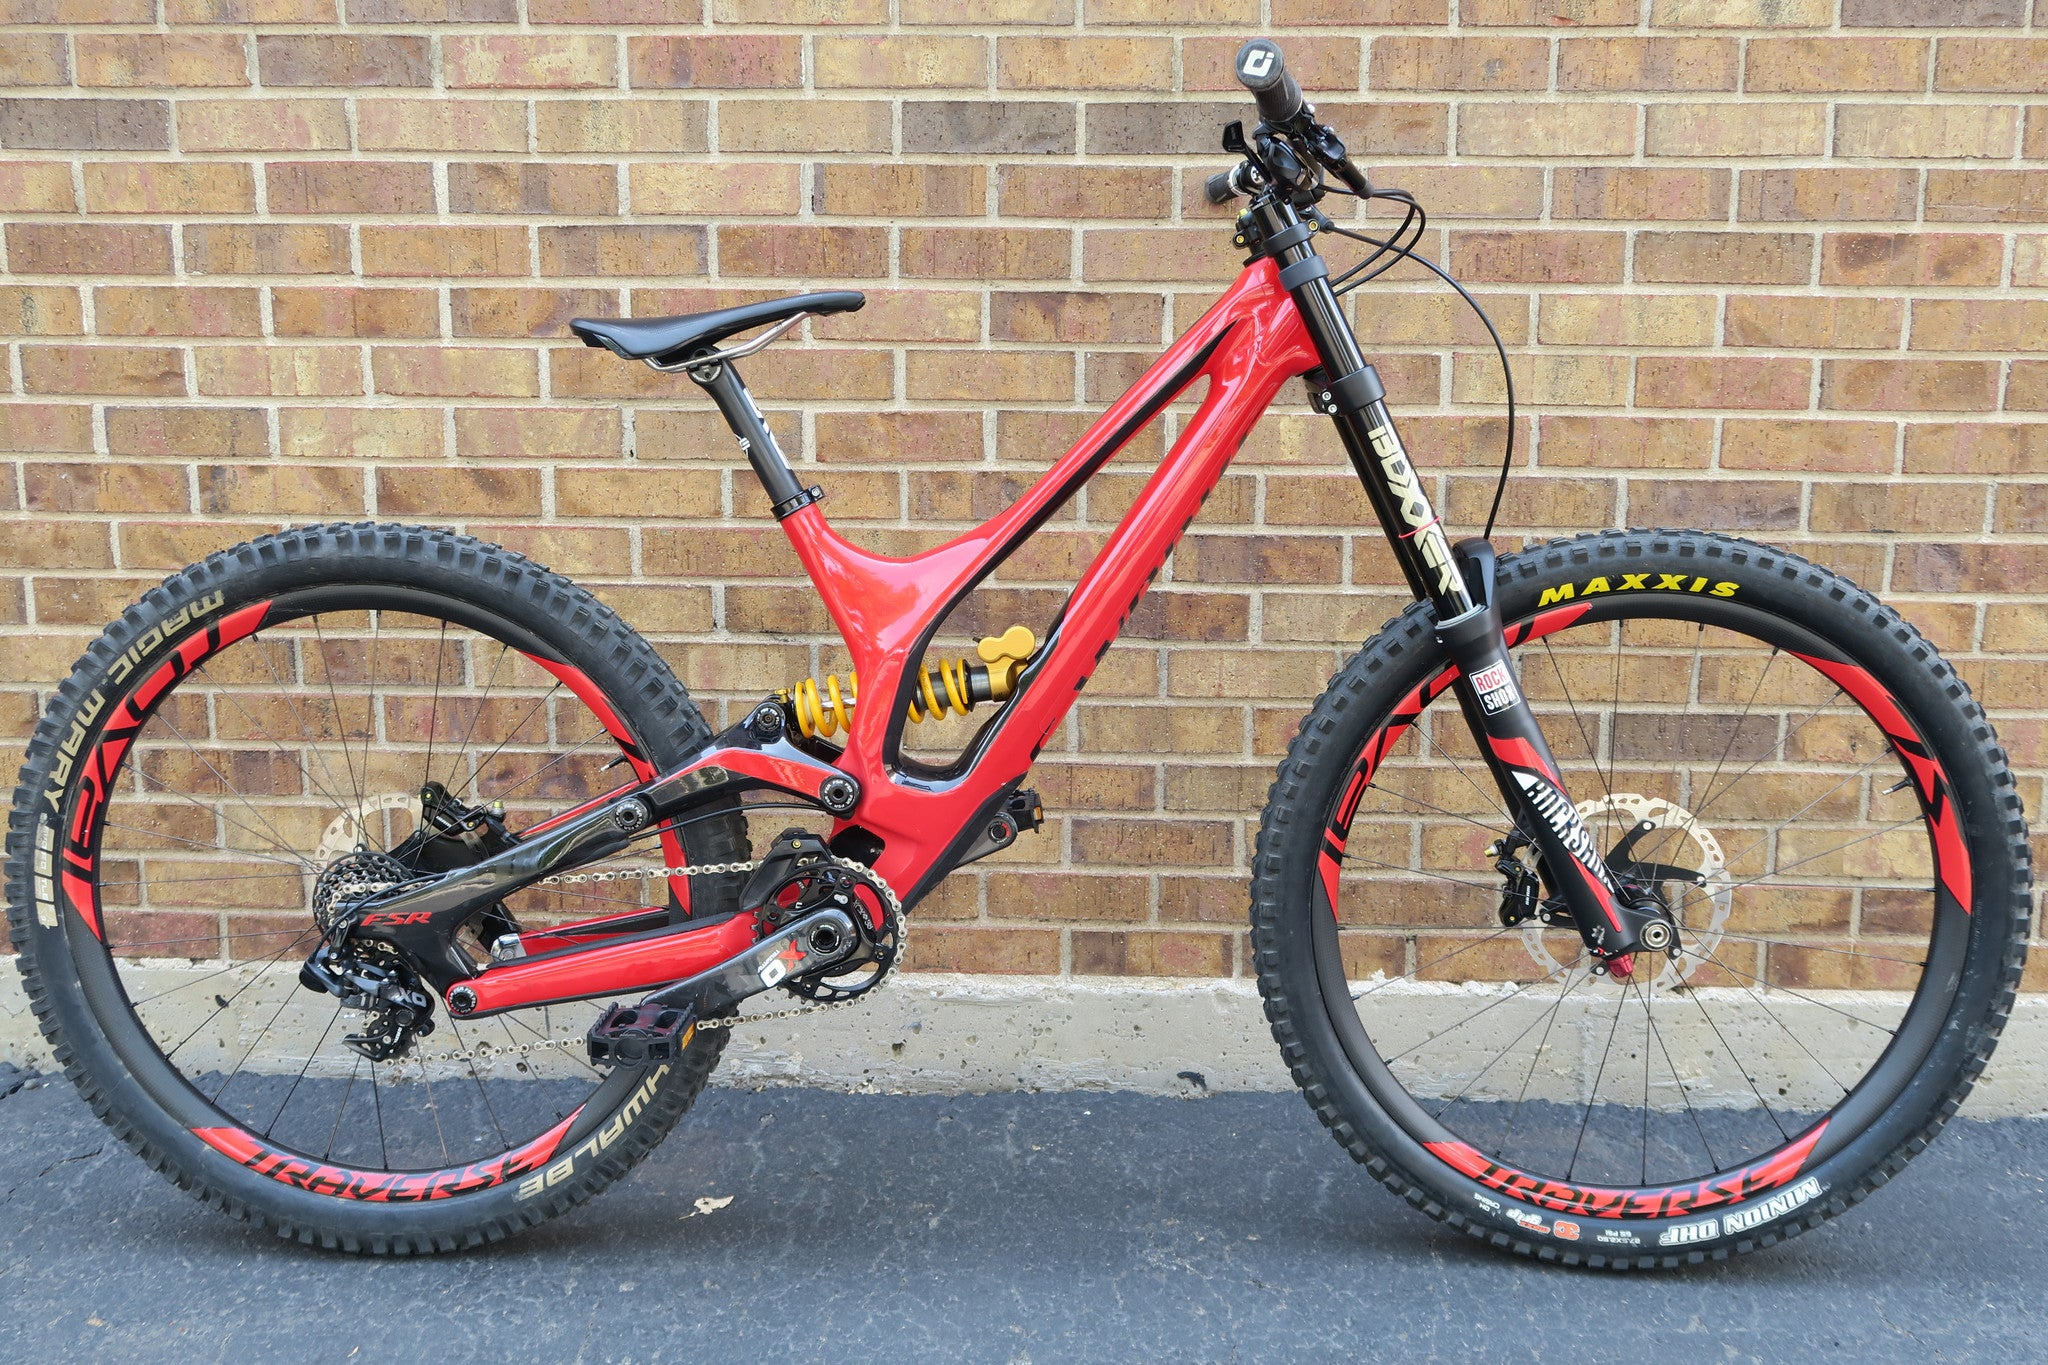 2015 S-WORKS DEMO 8 CARBON 27.5